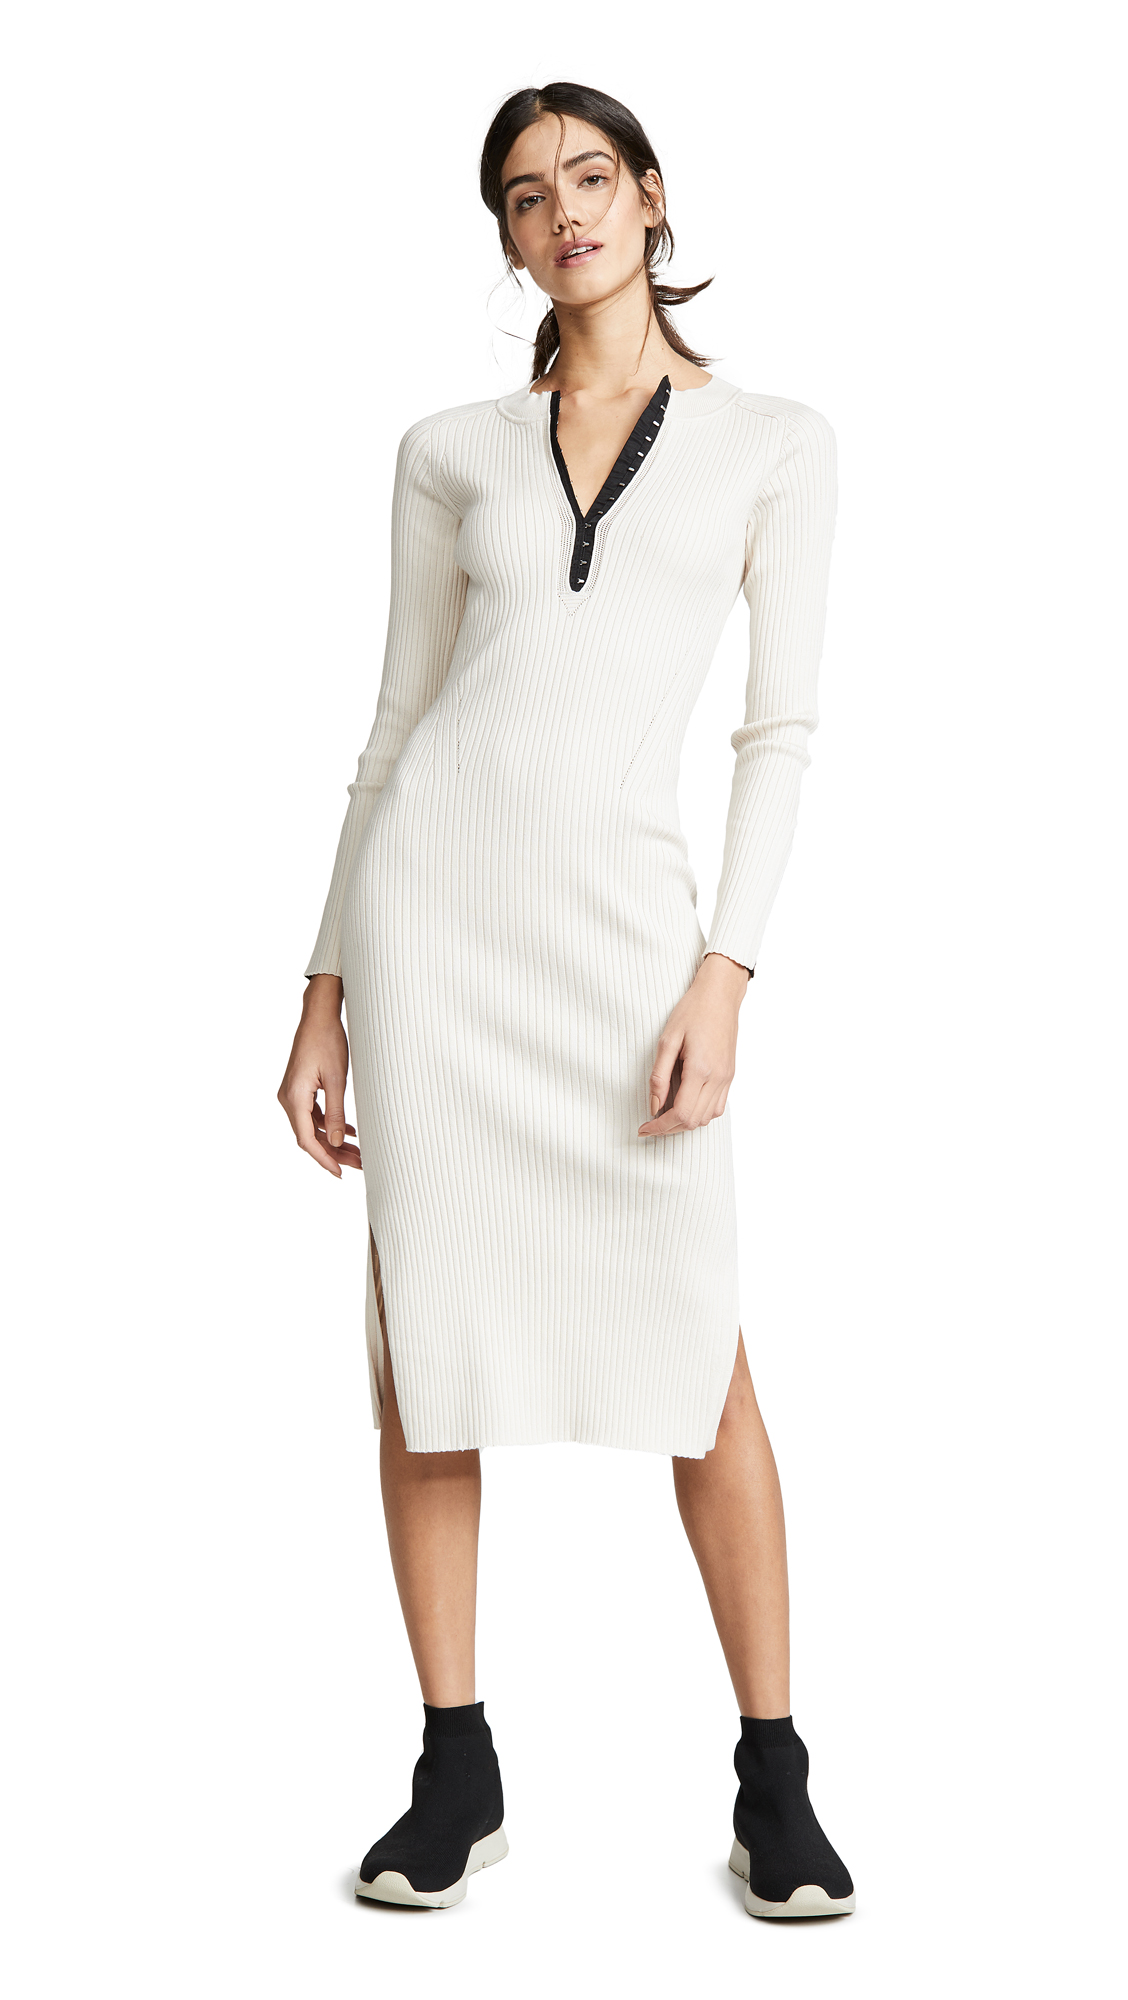 Rag & Bone Brynn Rib Dress - Ecru